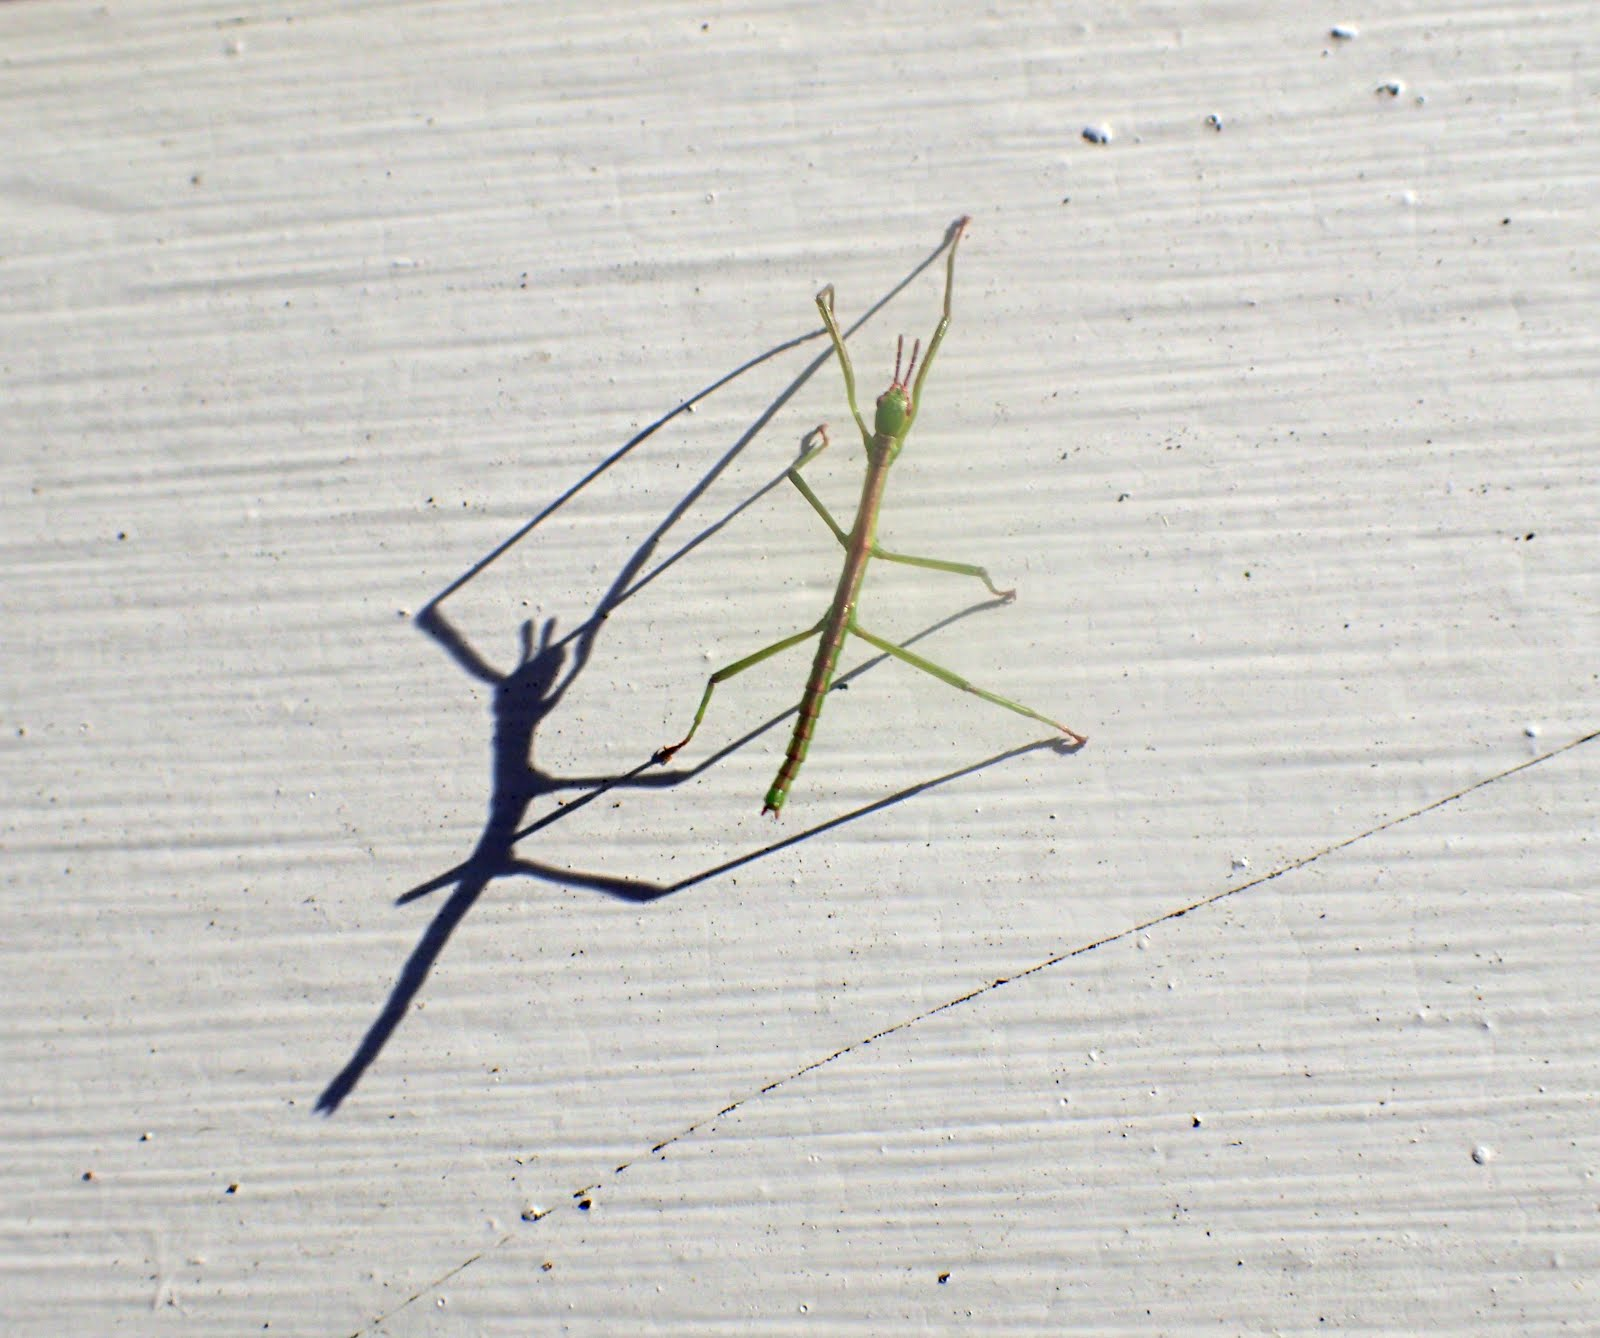 Baby stick insect heading up the house in the late afternoon